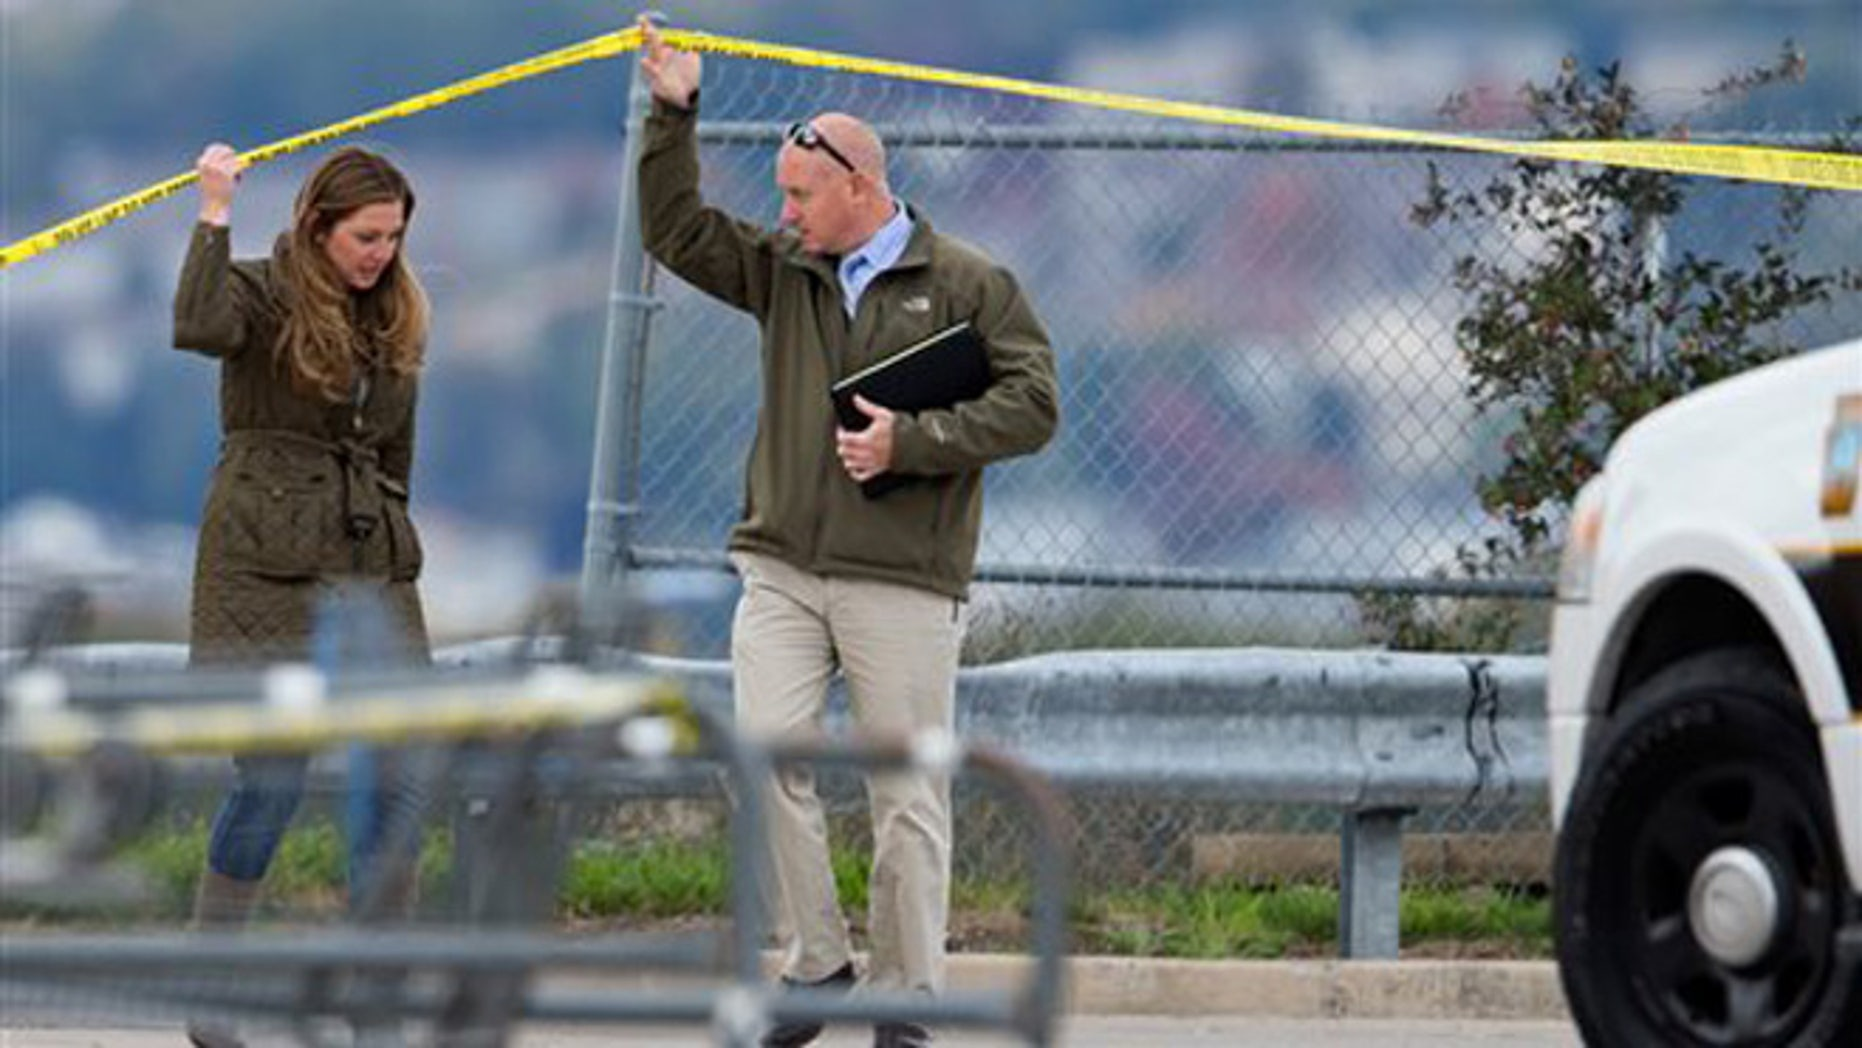 Luzerne County District Attorney Stefanie Salavantis, left, and investigator visit shooting scene outside a Walmart in Wilkes-Barre, Pa., Saturday.